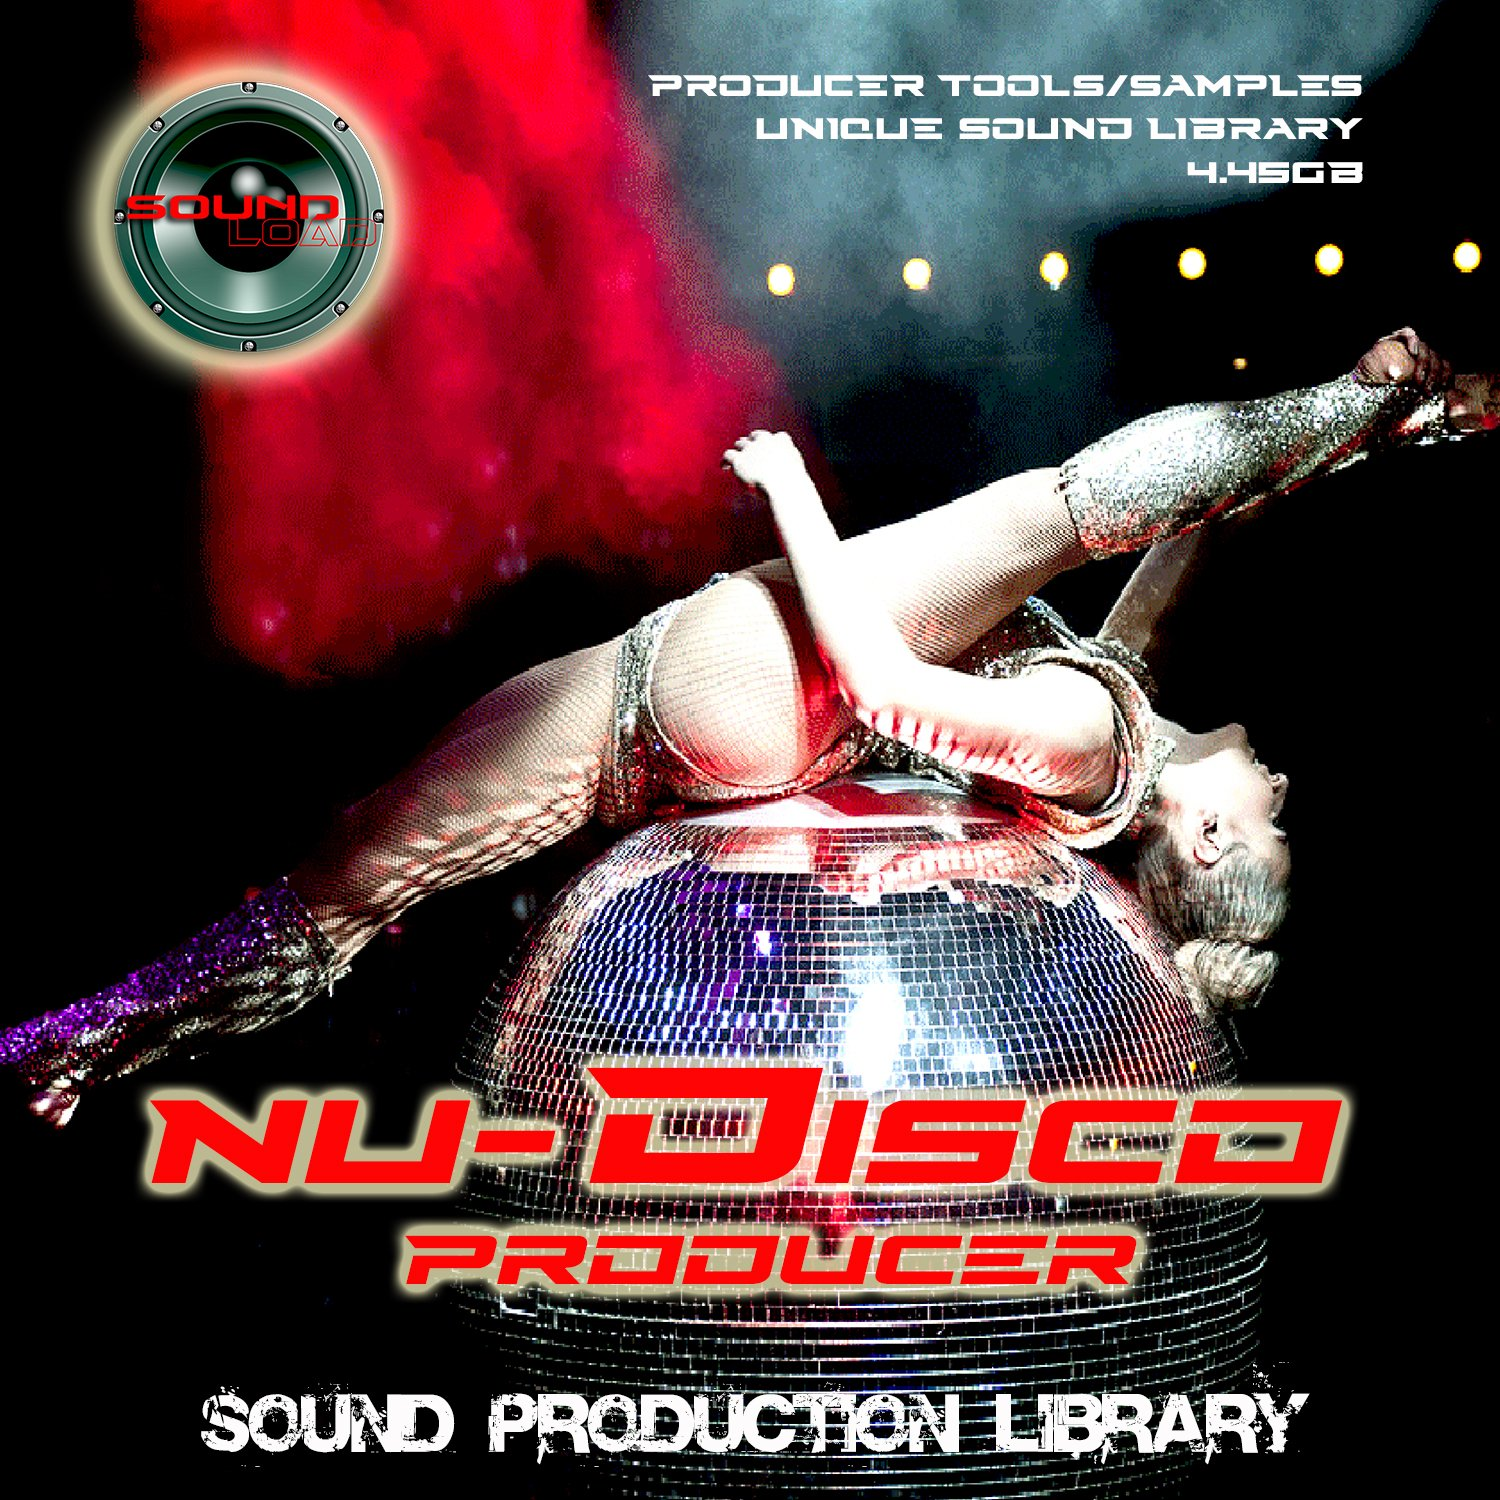 DISCO PRODUCER - THE Best of Disco Studio Audio Production Kit - Sound Library over 1,1GB Samples on DVD or download